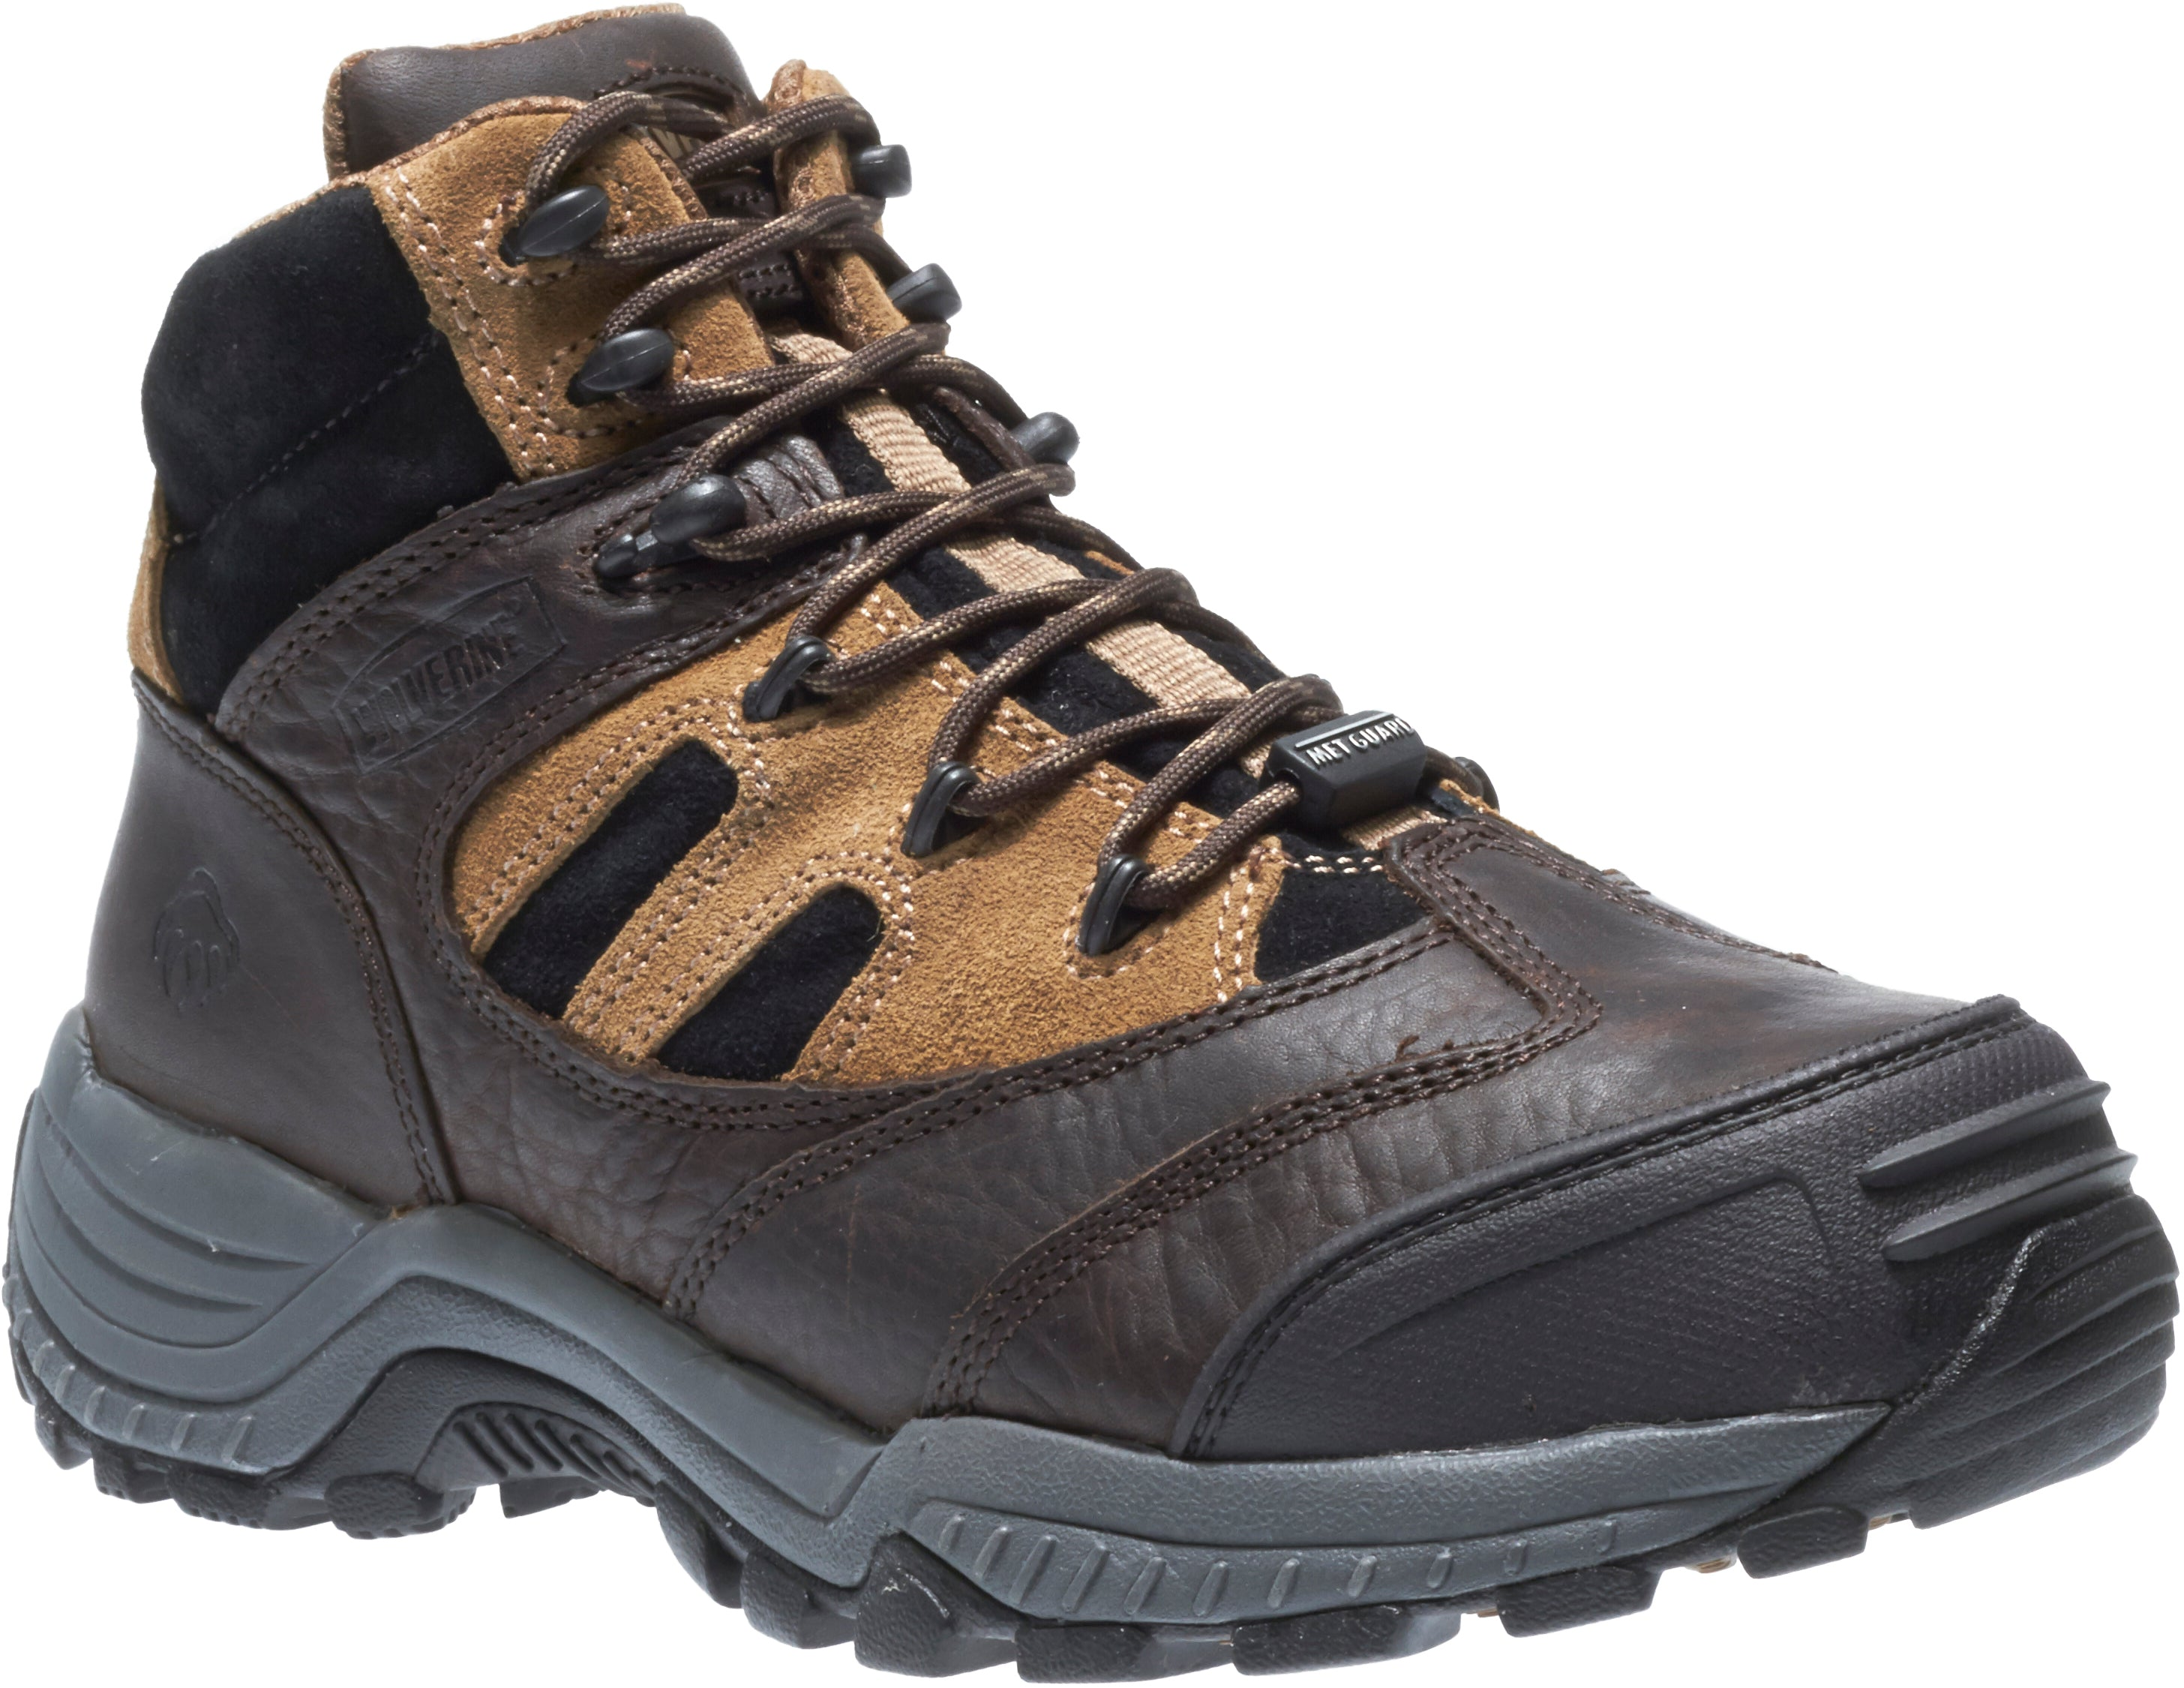 Kingmont Internal Met Guard Composite Toe Hiker - Brown / Black / Tan